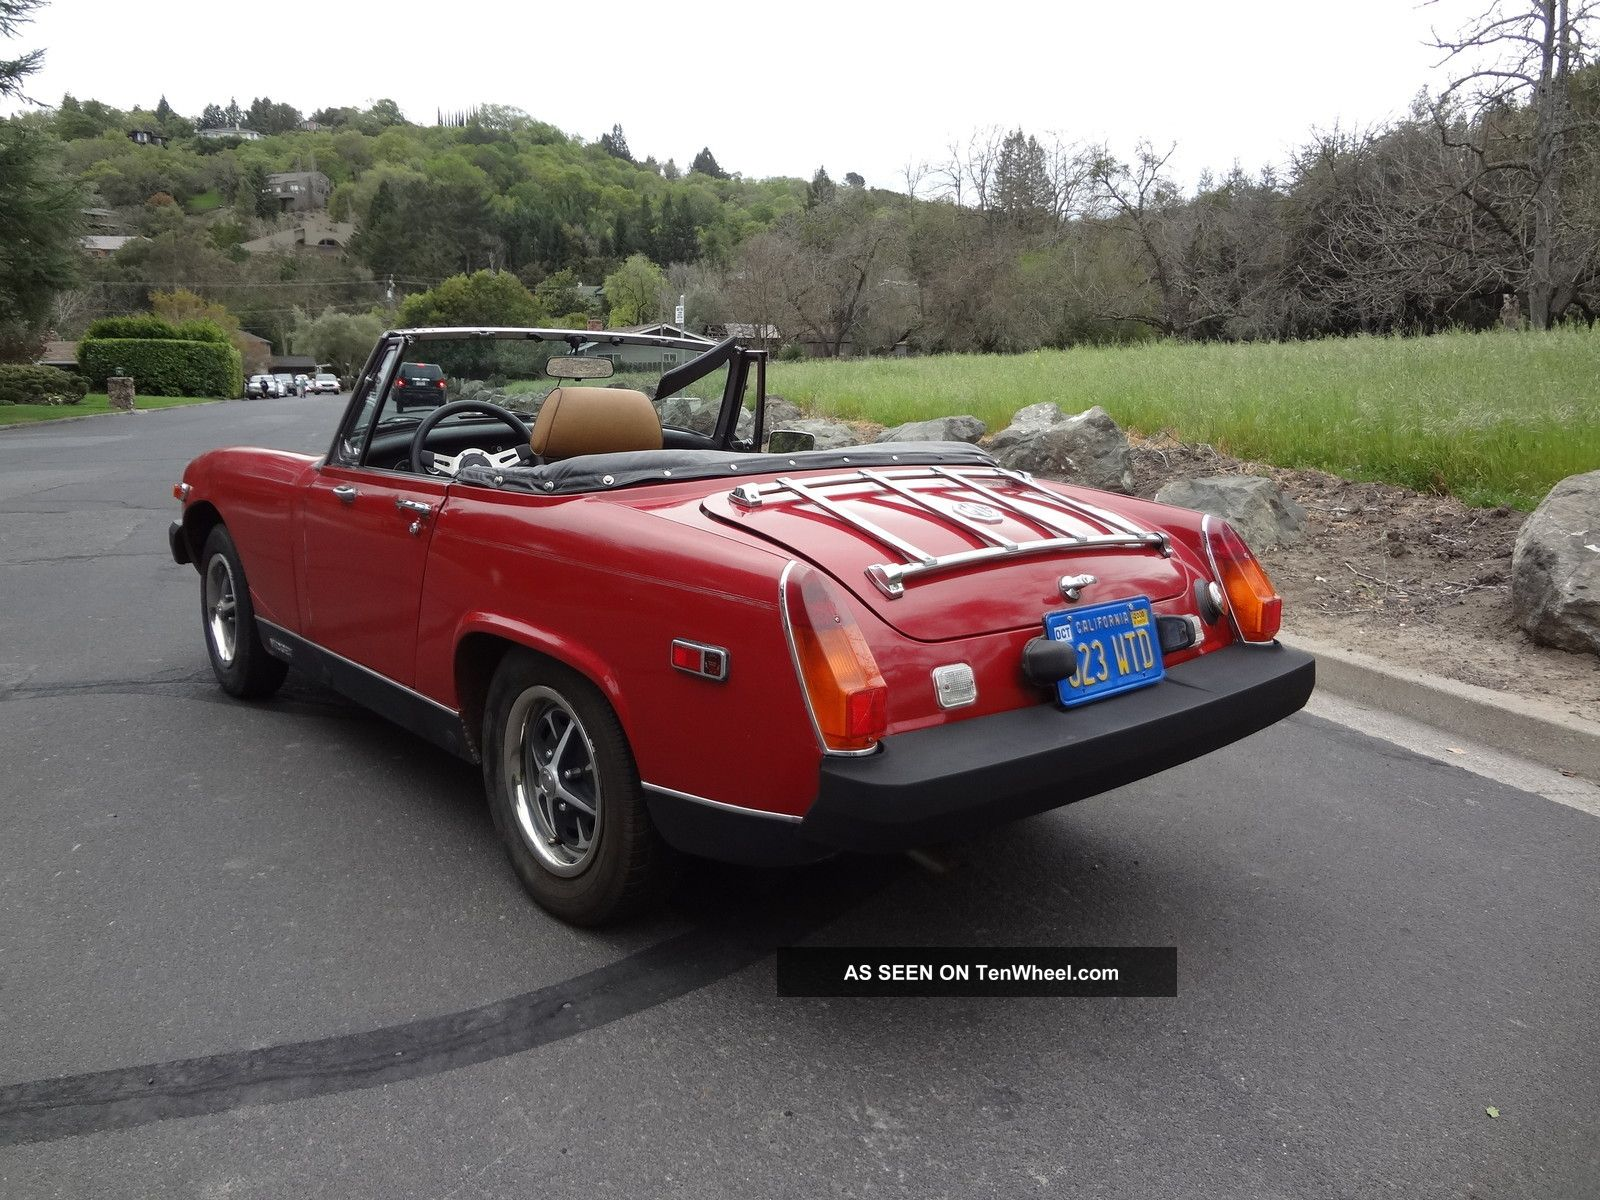 Mg midget covertiable